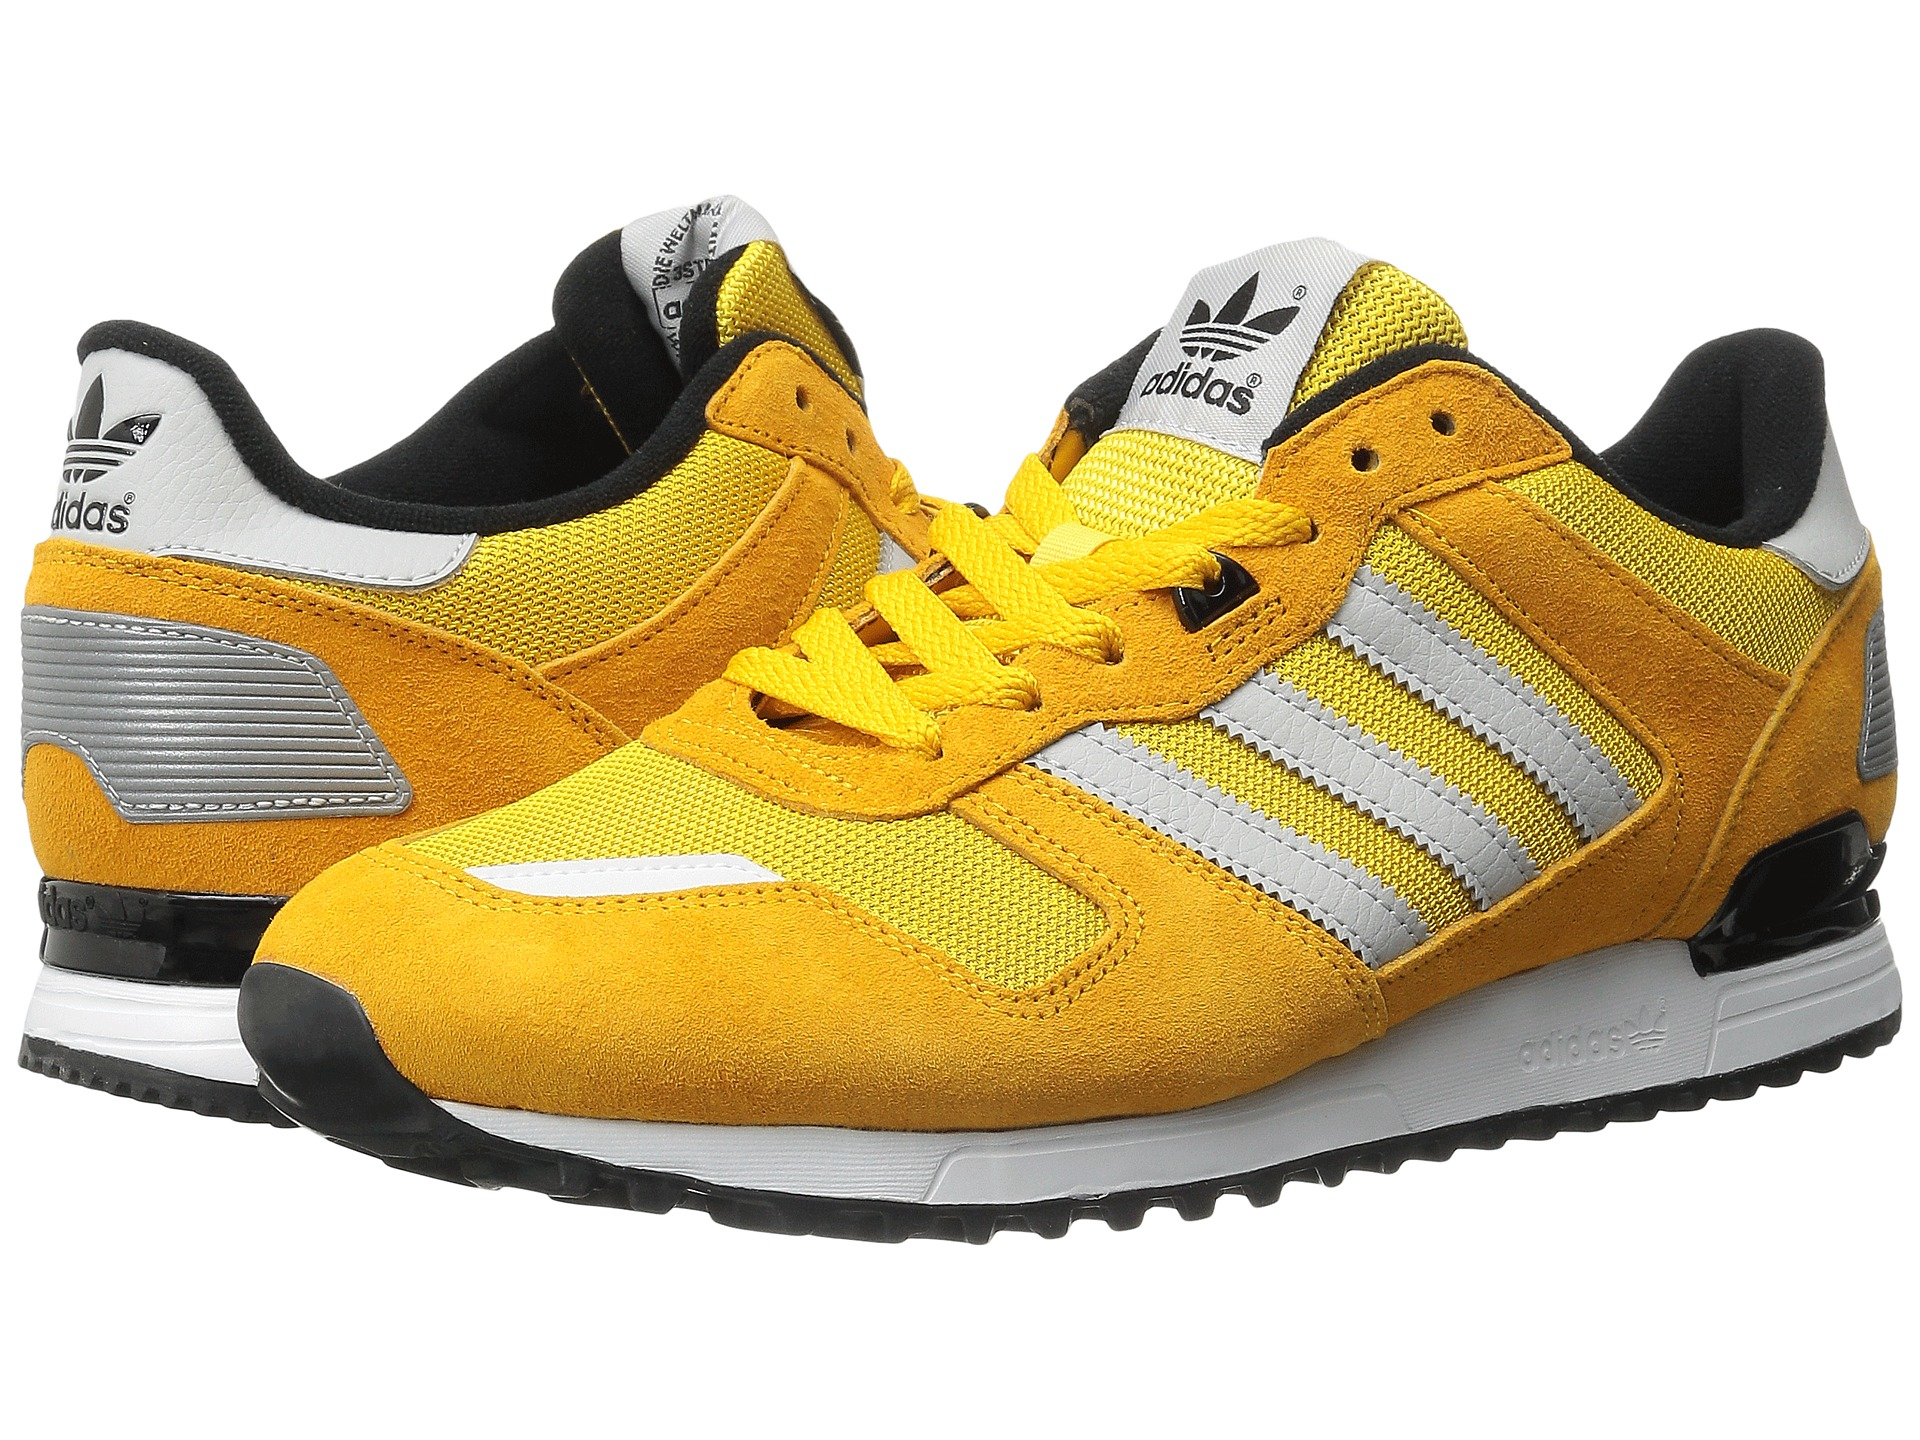 ef6286cae94d ... france lyst adidas originals zx 700 in yellow e5113 2952a